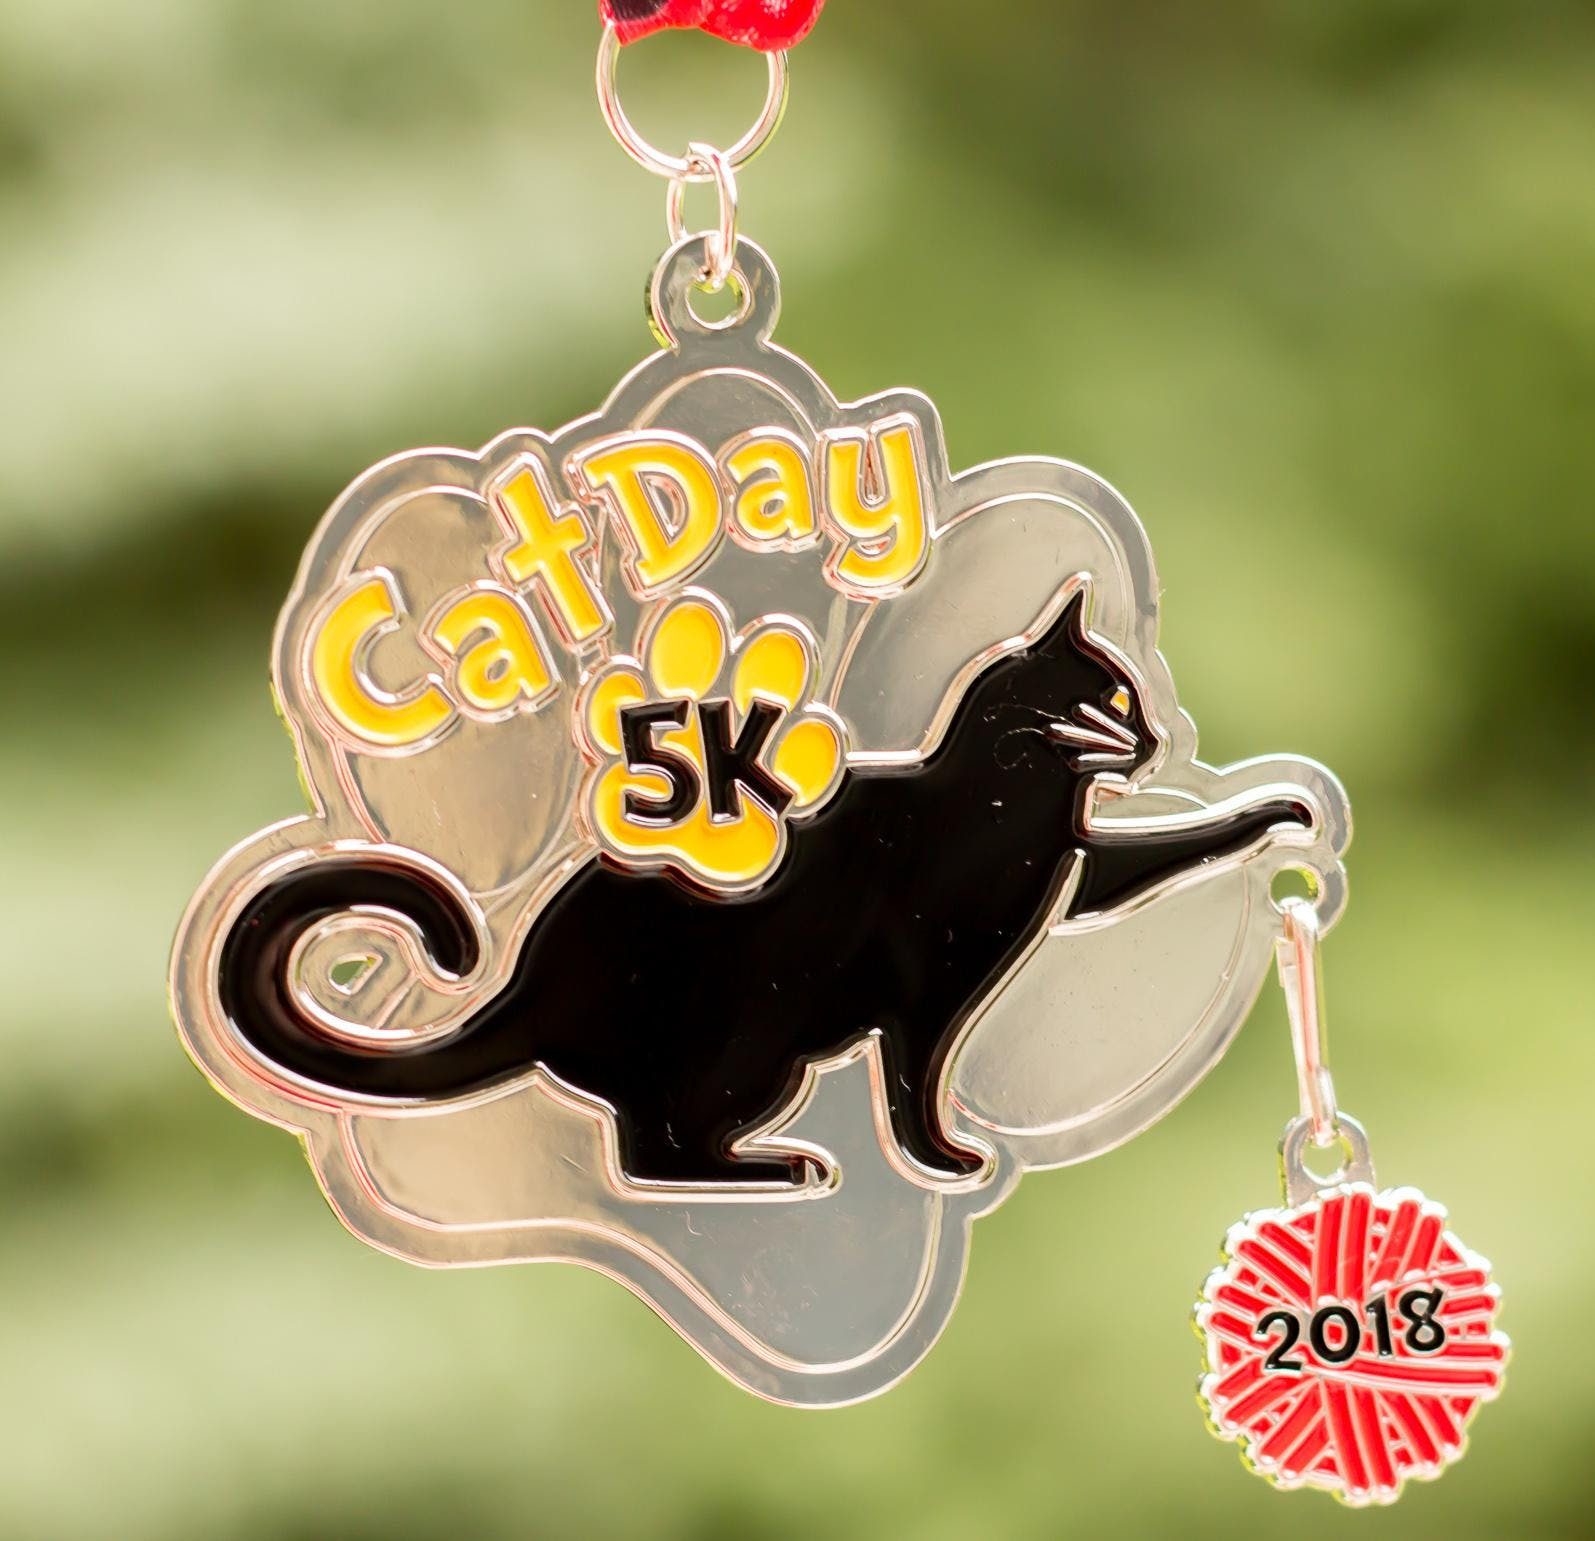 Now Only $10 Cat Day 5K & 10K - Chandler